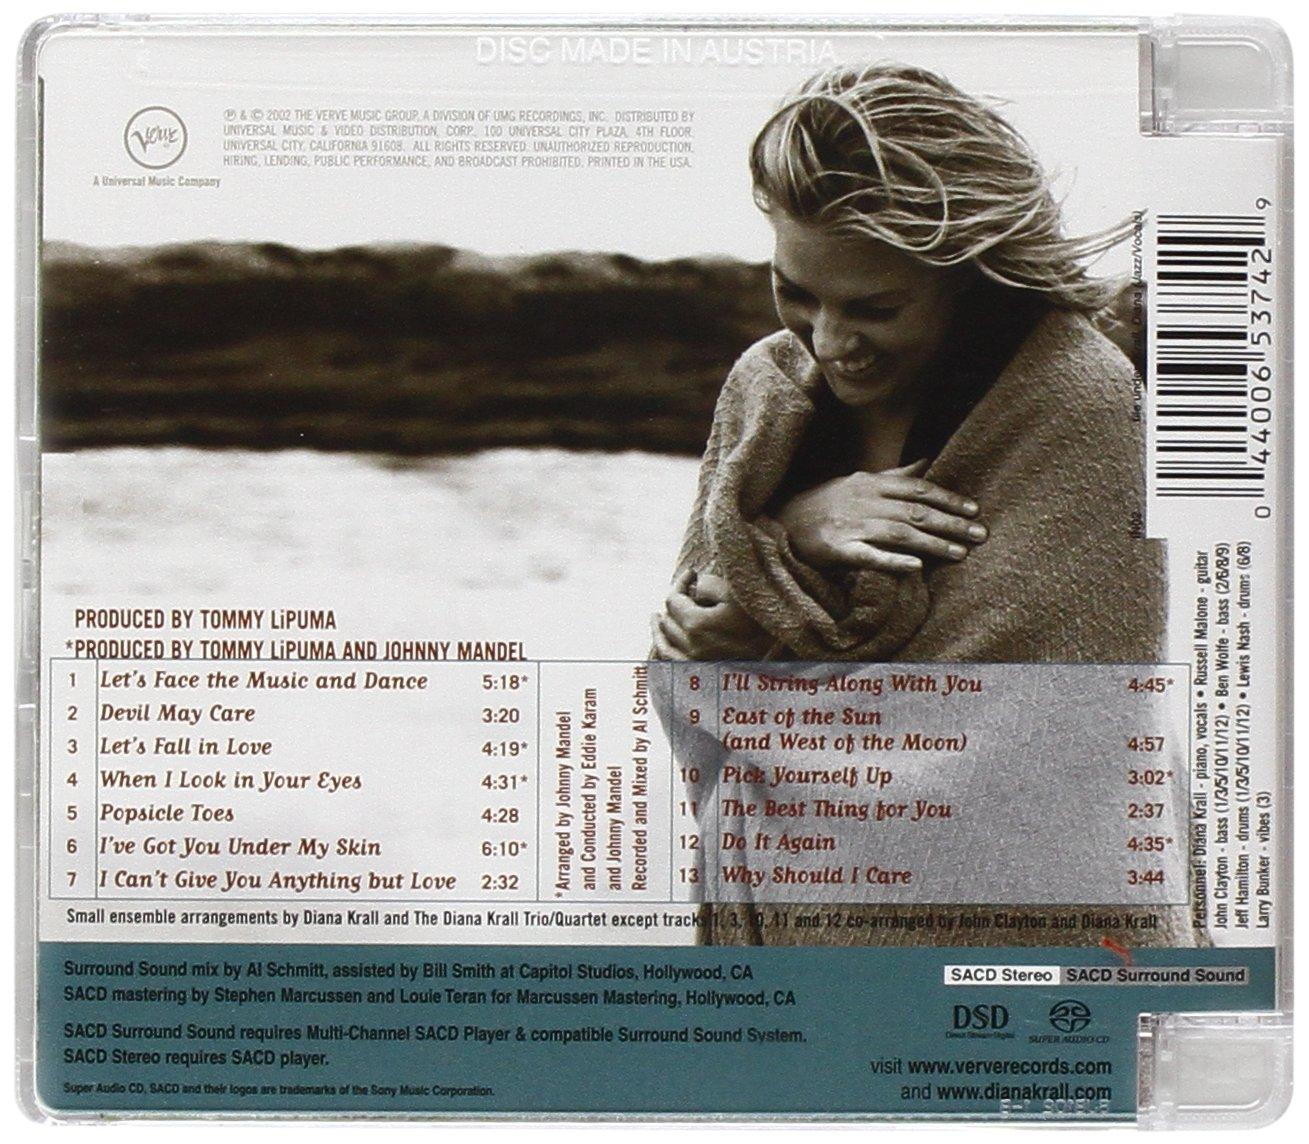 When I Look In Your Eyes [SACD]- [Requires SACD-compatible players to play]